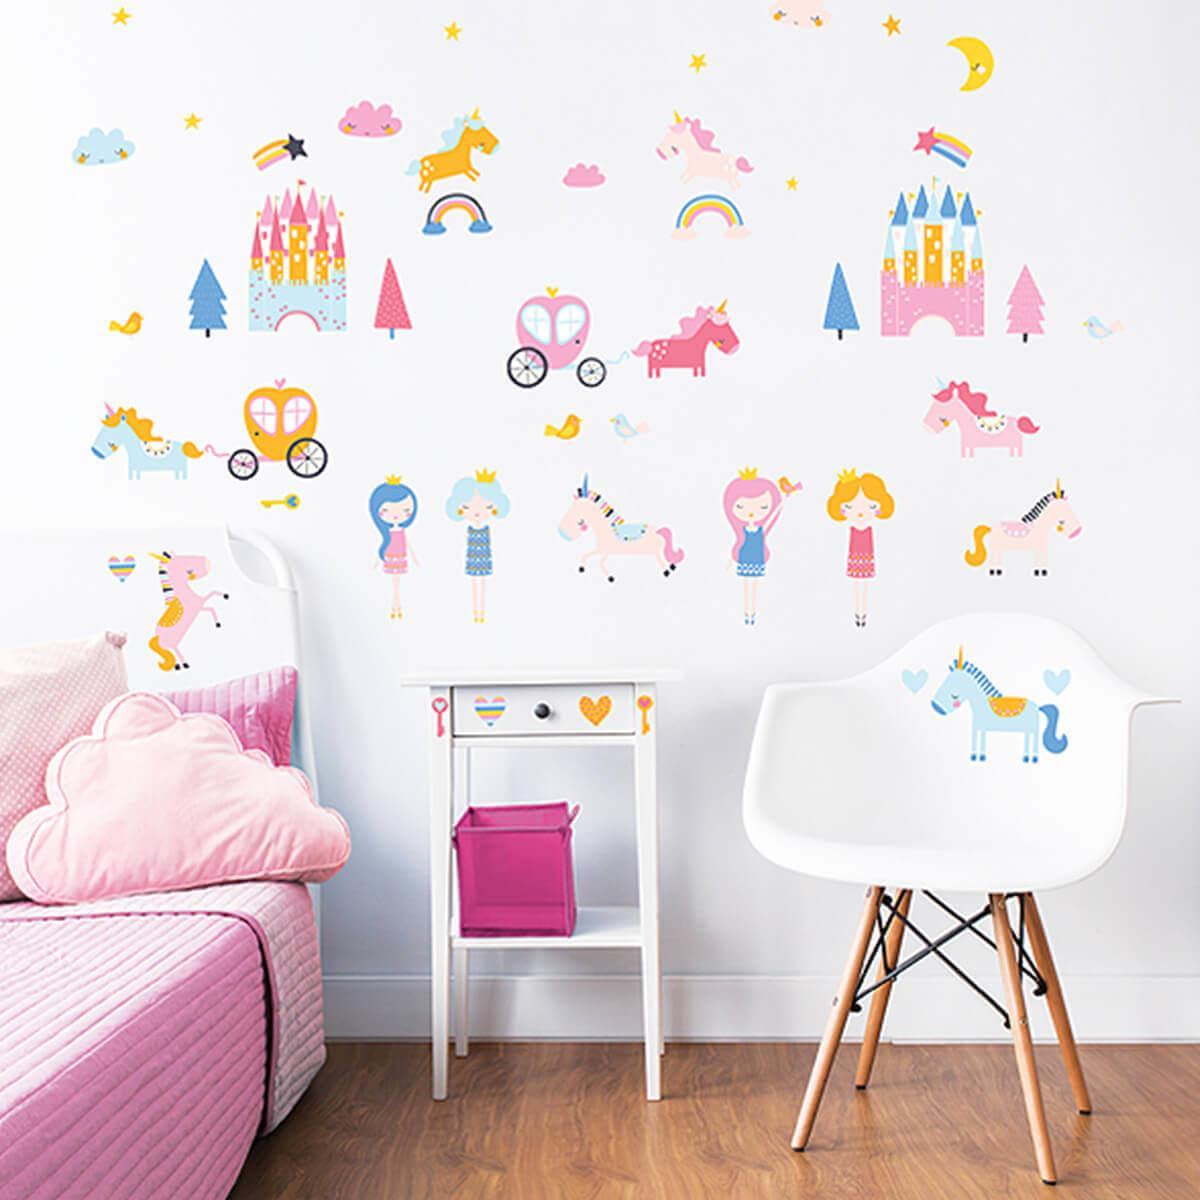 Walltastic Unicorn Kingdom Room Stickers Wall